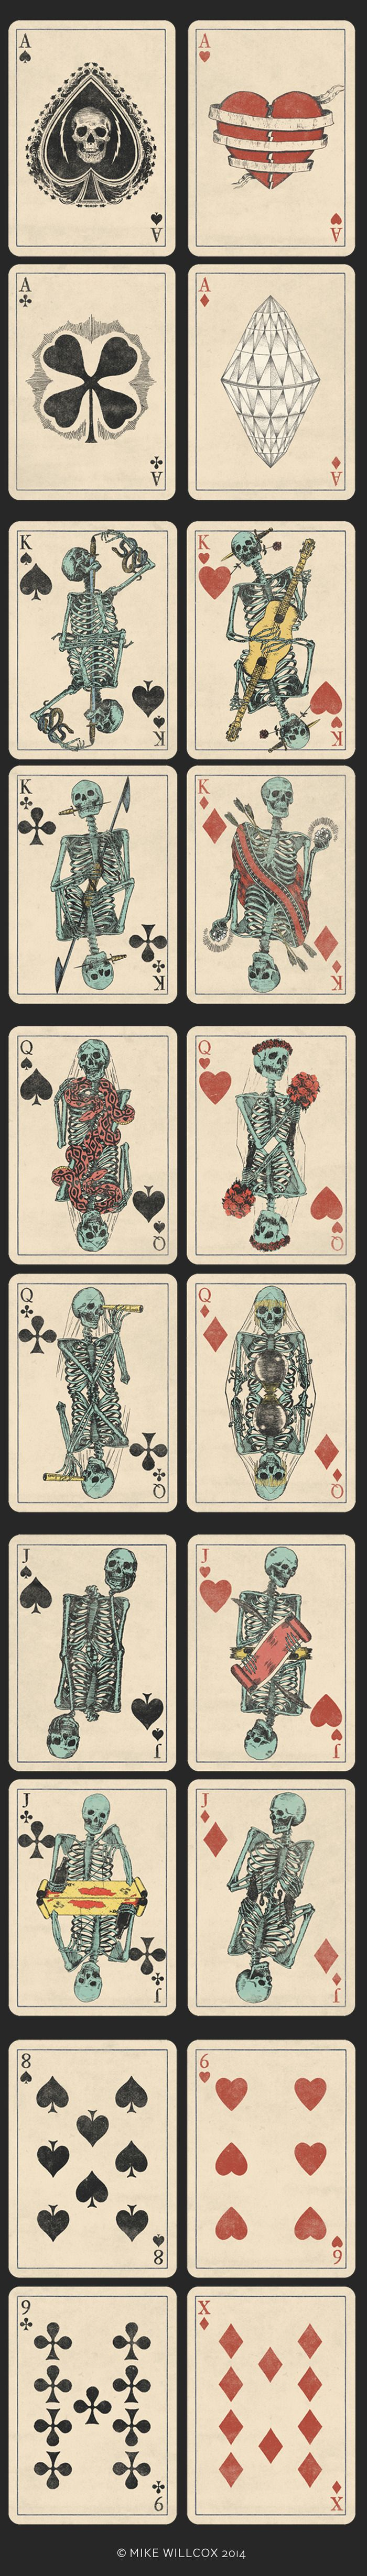 A Deck of Skeletons. Vintage STYLE Playing Cards. by Mike Willcox — Kickstarter